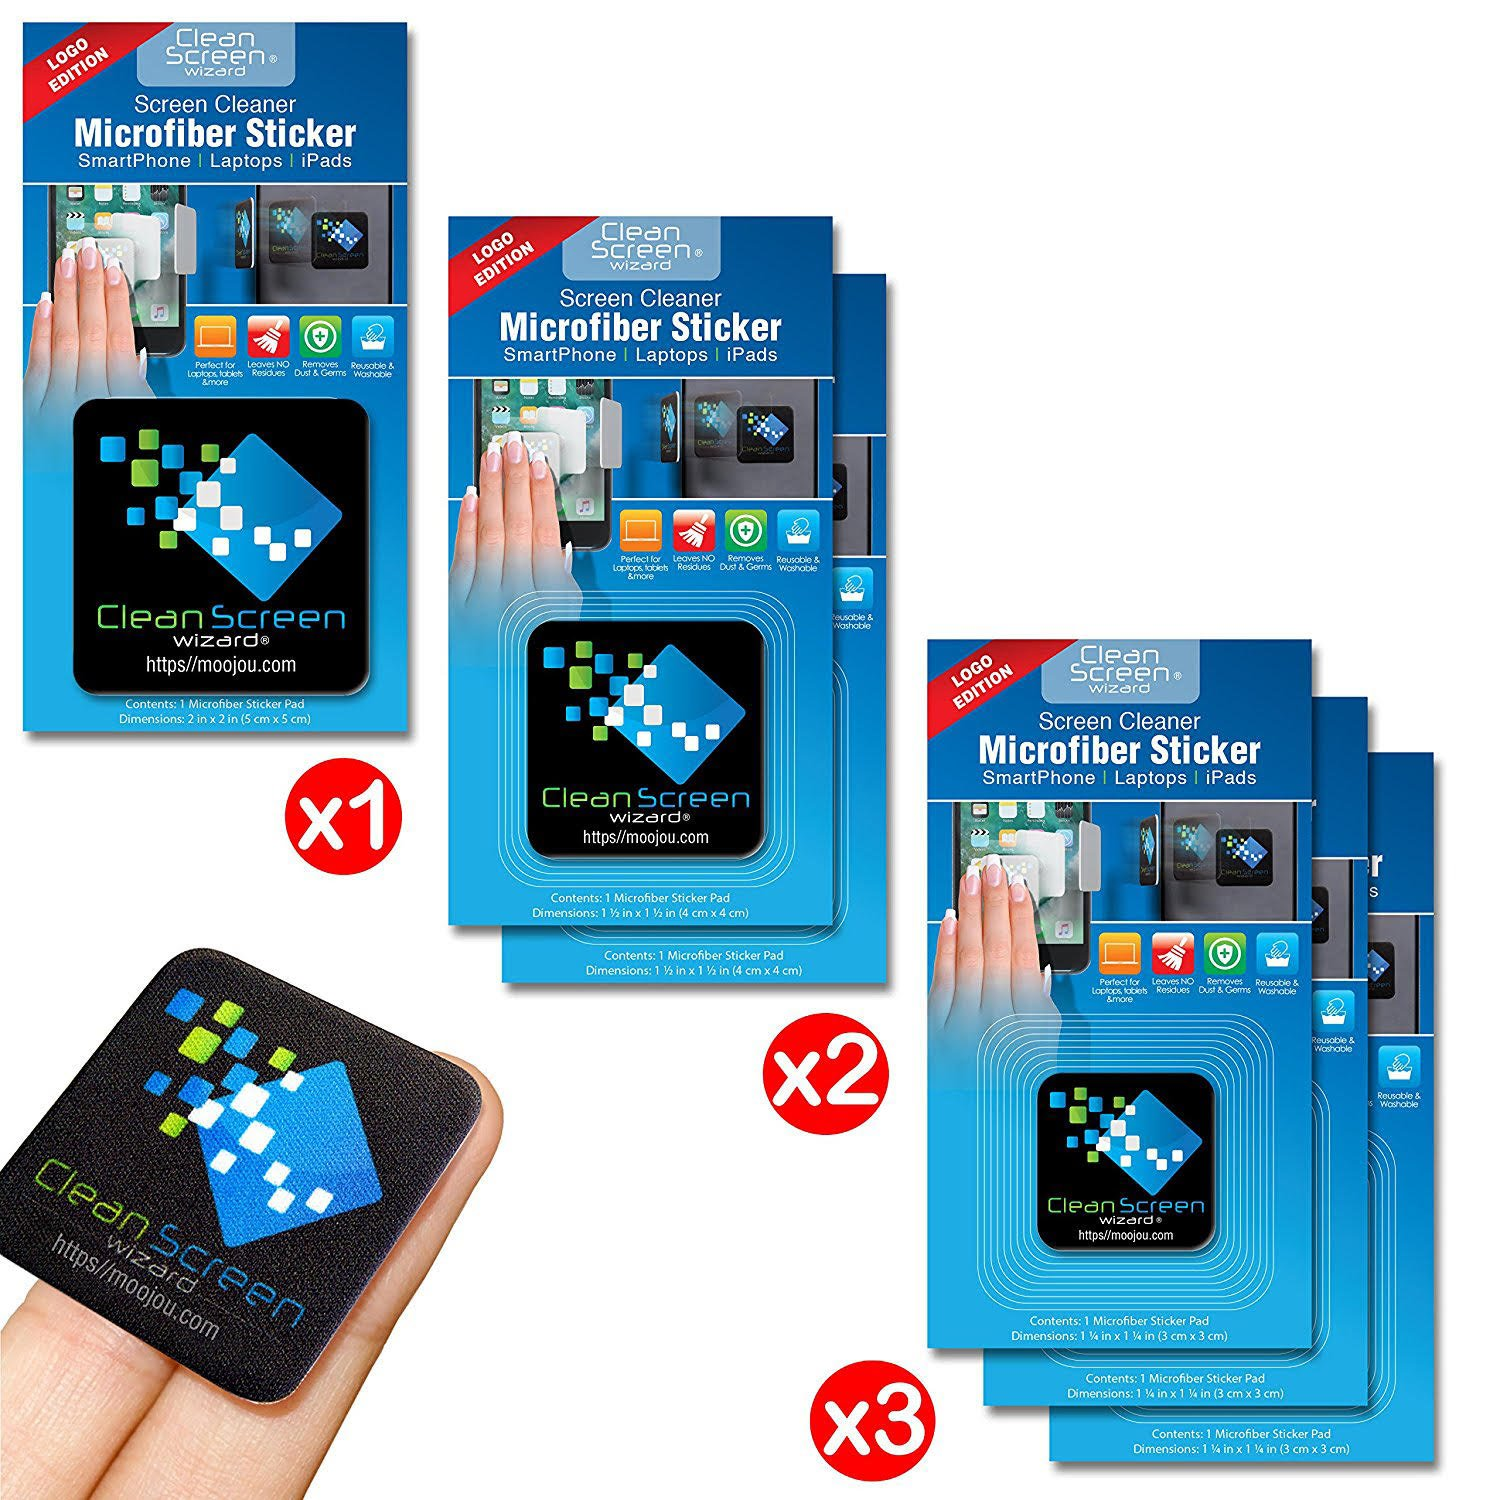 Clean Screen Wizard Microfiber Screen Cleaner Sticker/Handy Screen Cleaning Kit, 6 Pack Bundle Cleaning Stickers (1 Large, 2 Medium, 3 Small) in Black- for Multi Size Screens